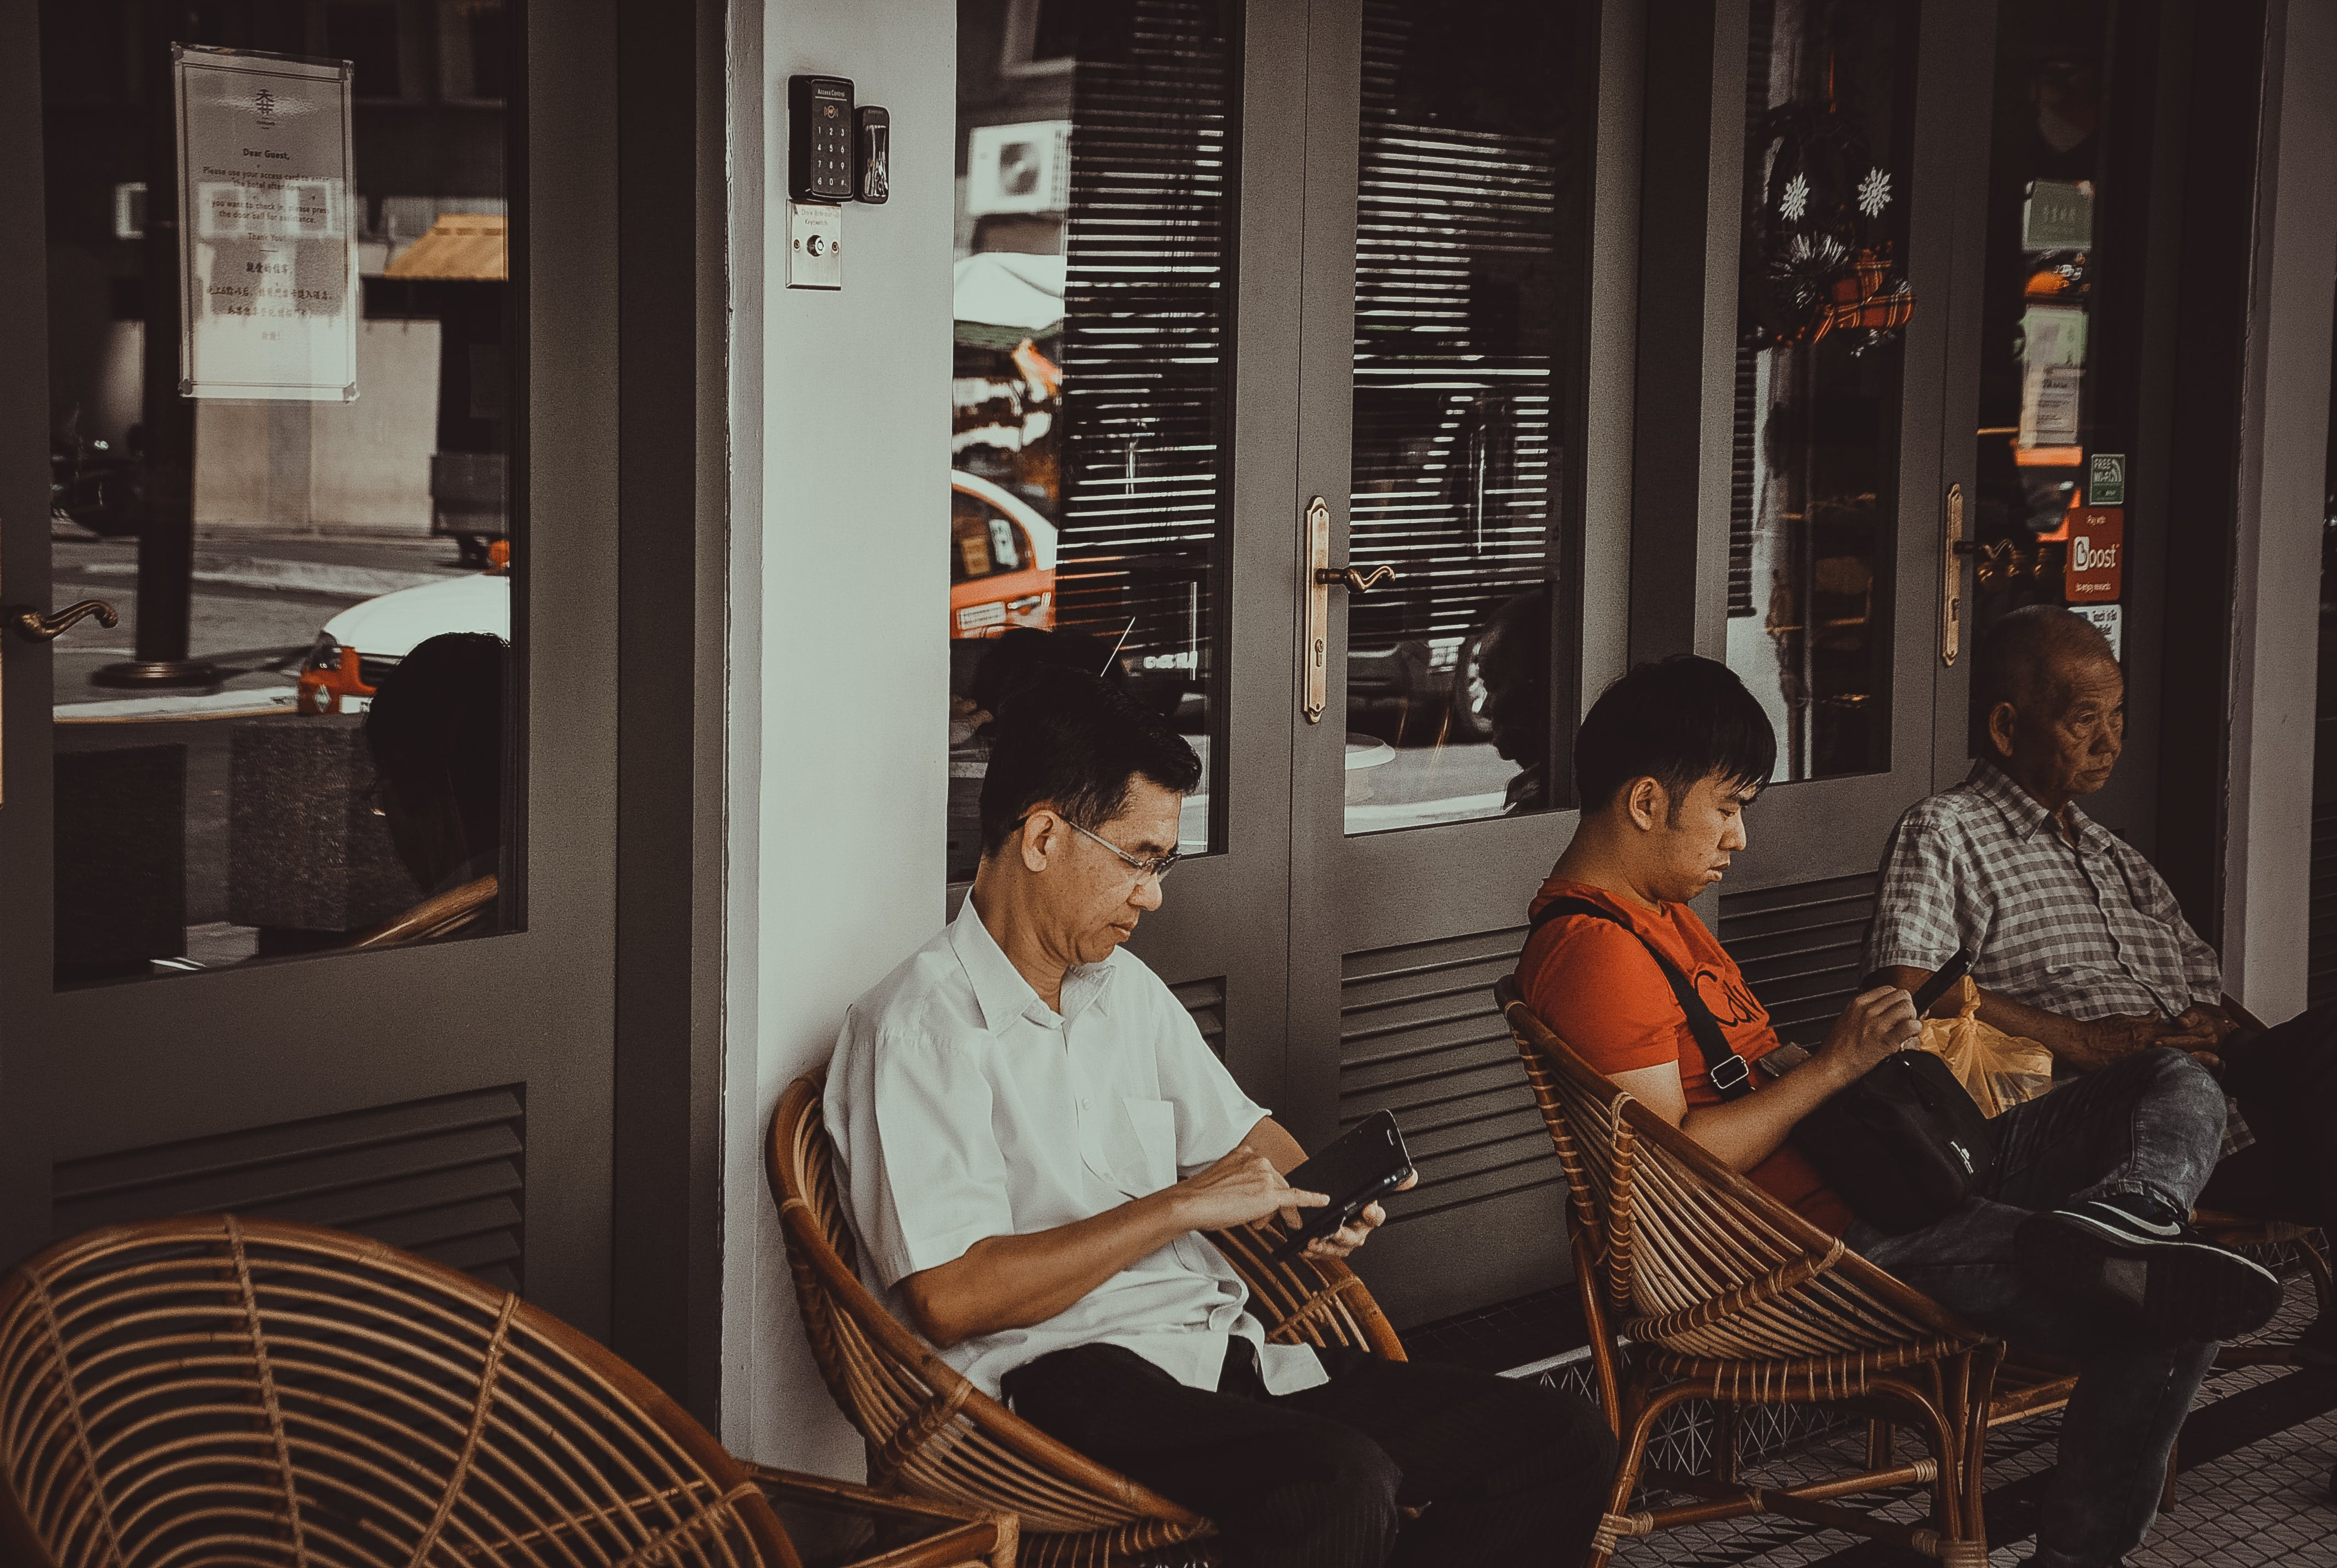 Men Sitting On Chairs